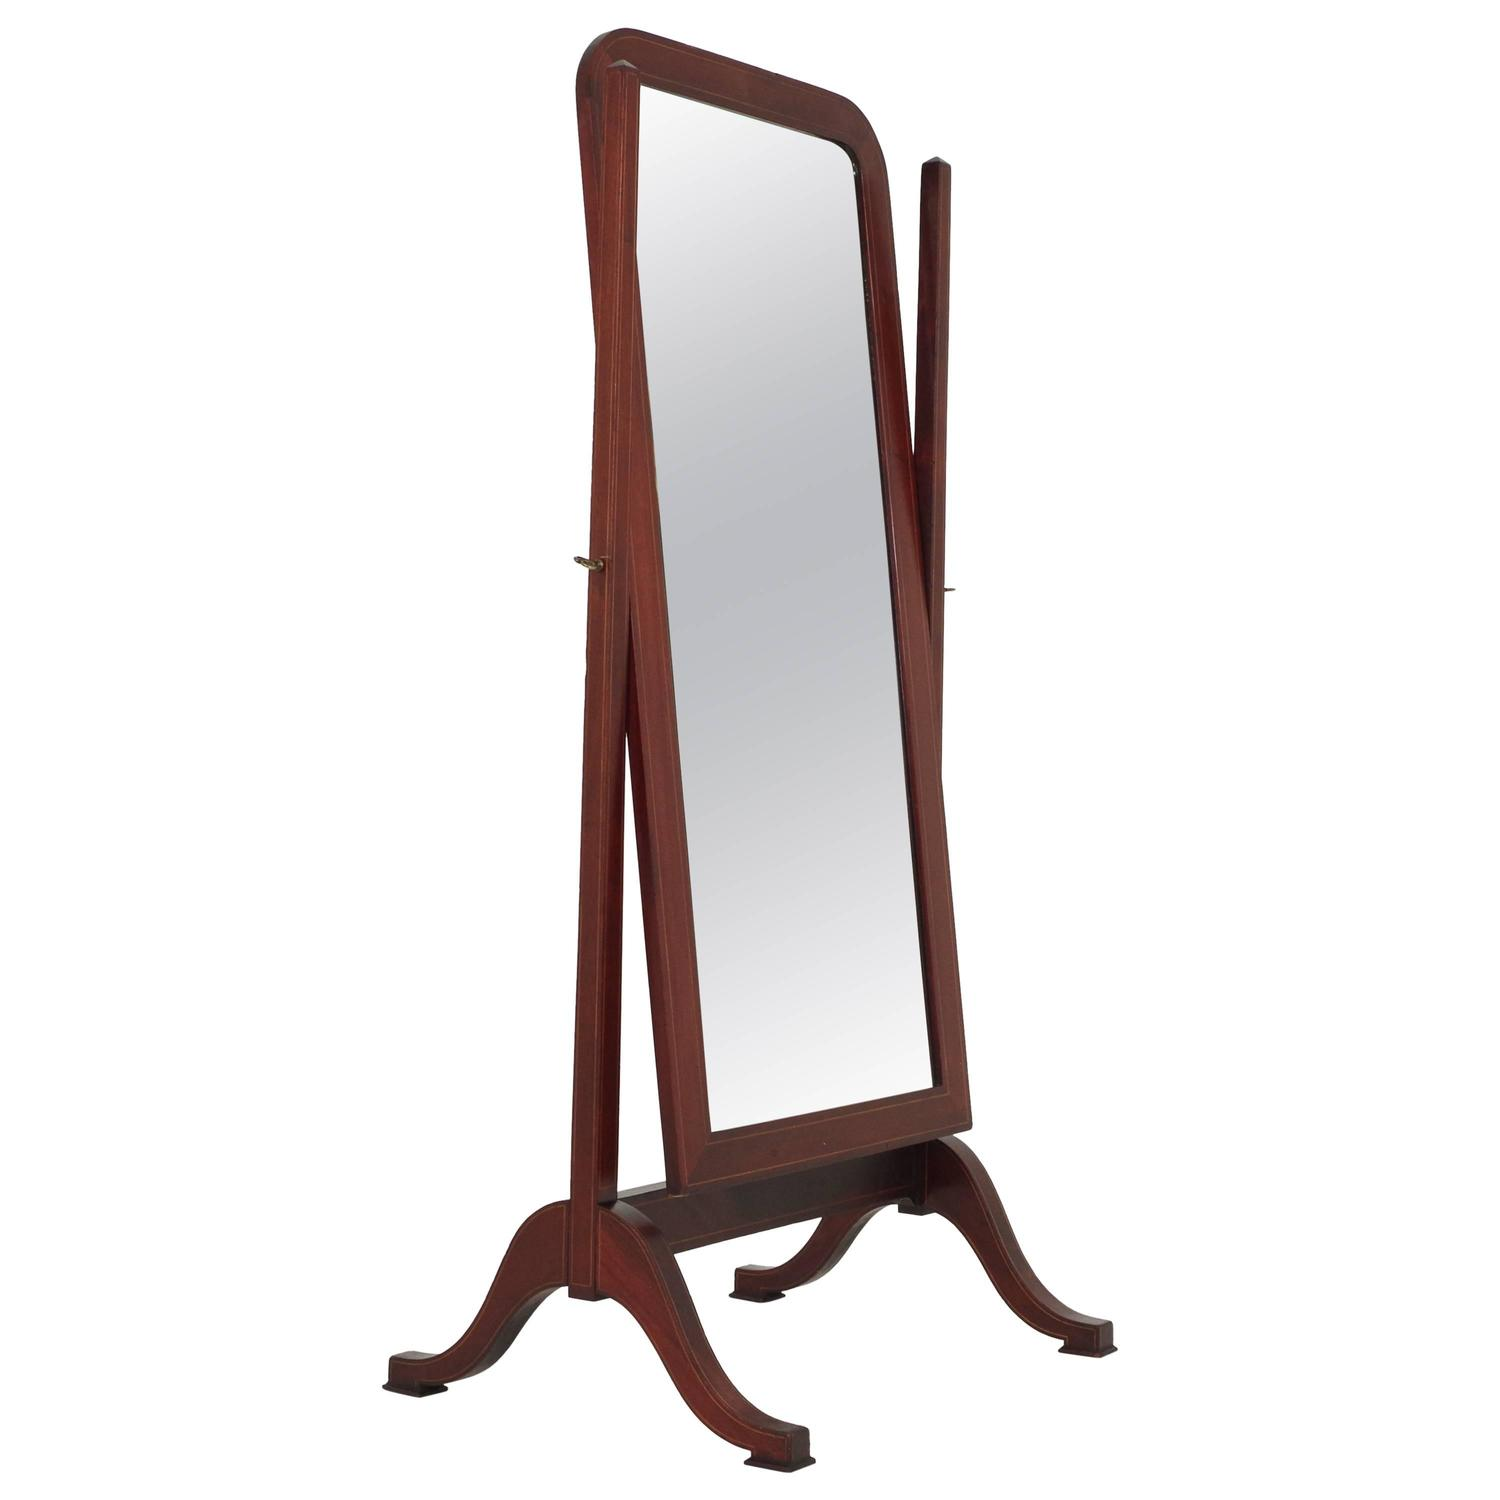 Antique Scottish Gany Inlaid Cheval Dressing Full Length Mirror On Stand At 1stdibs